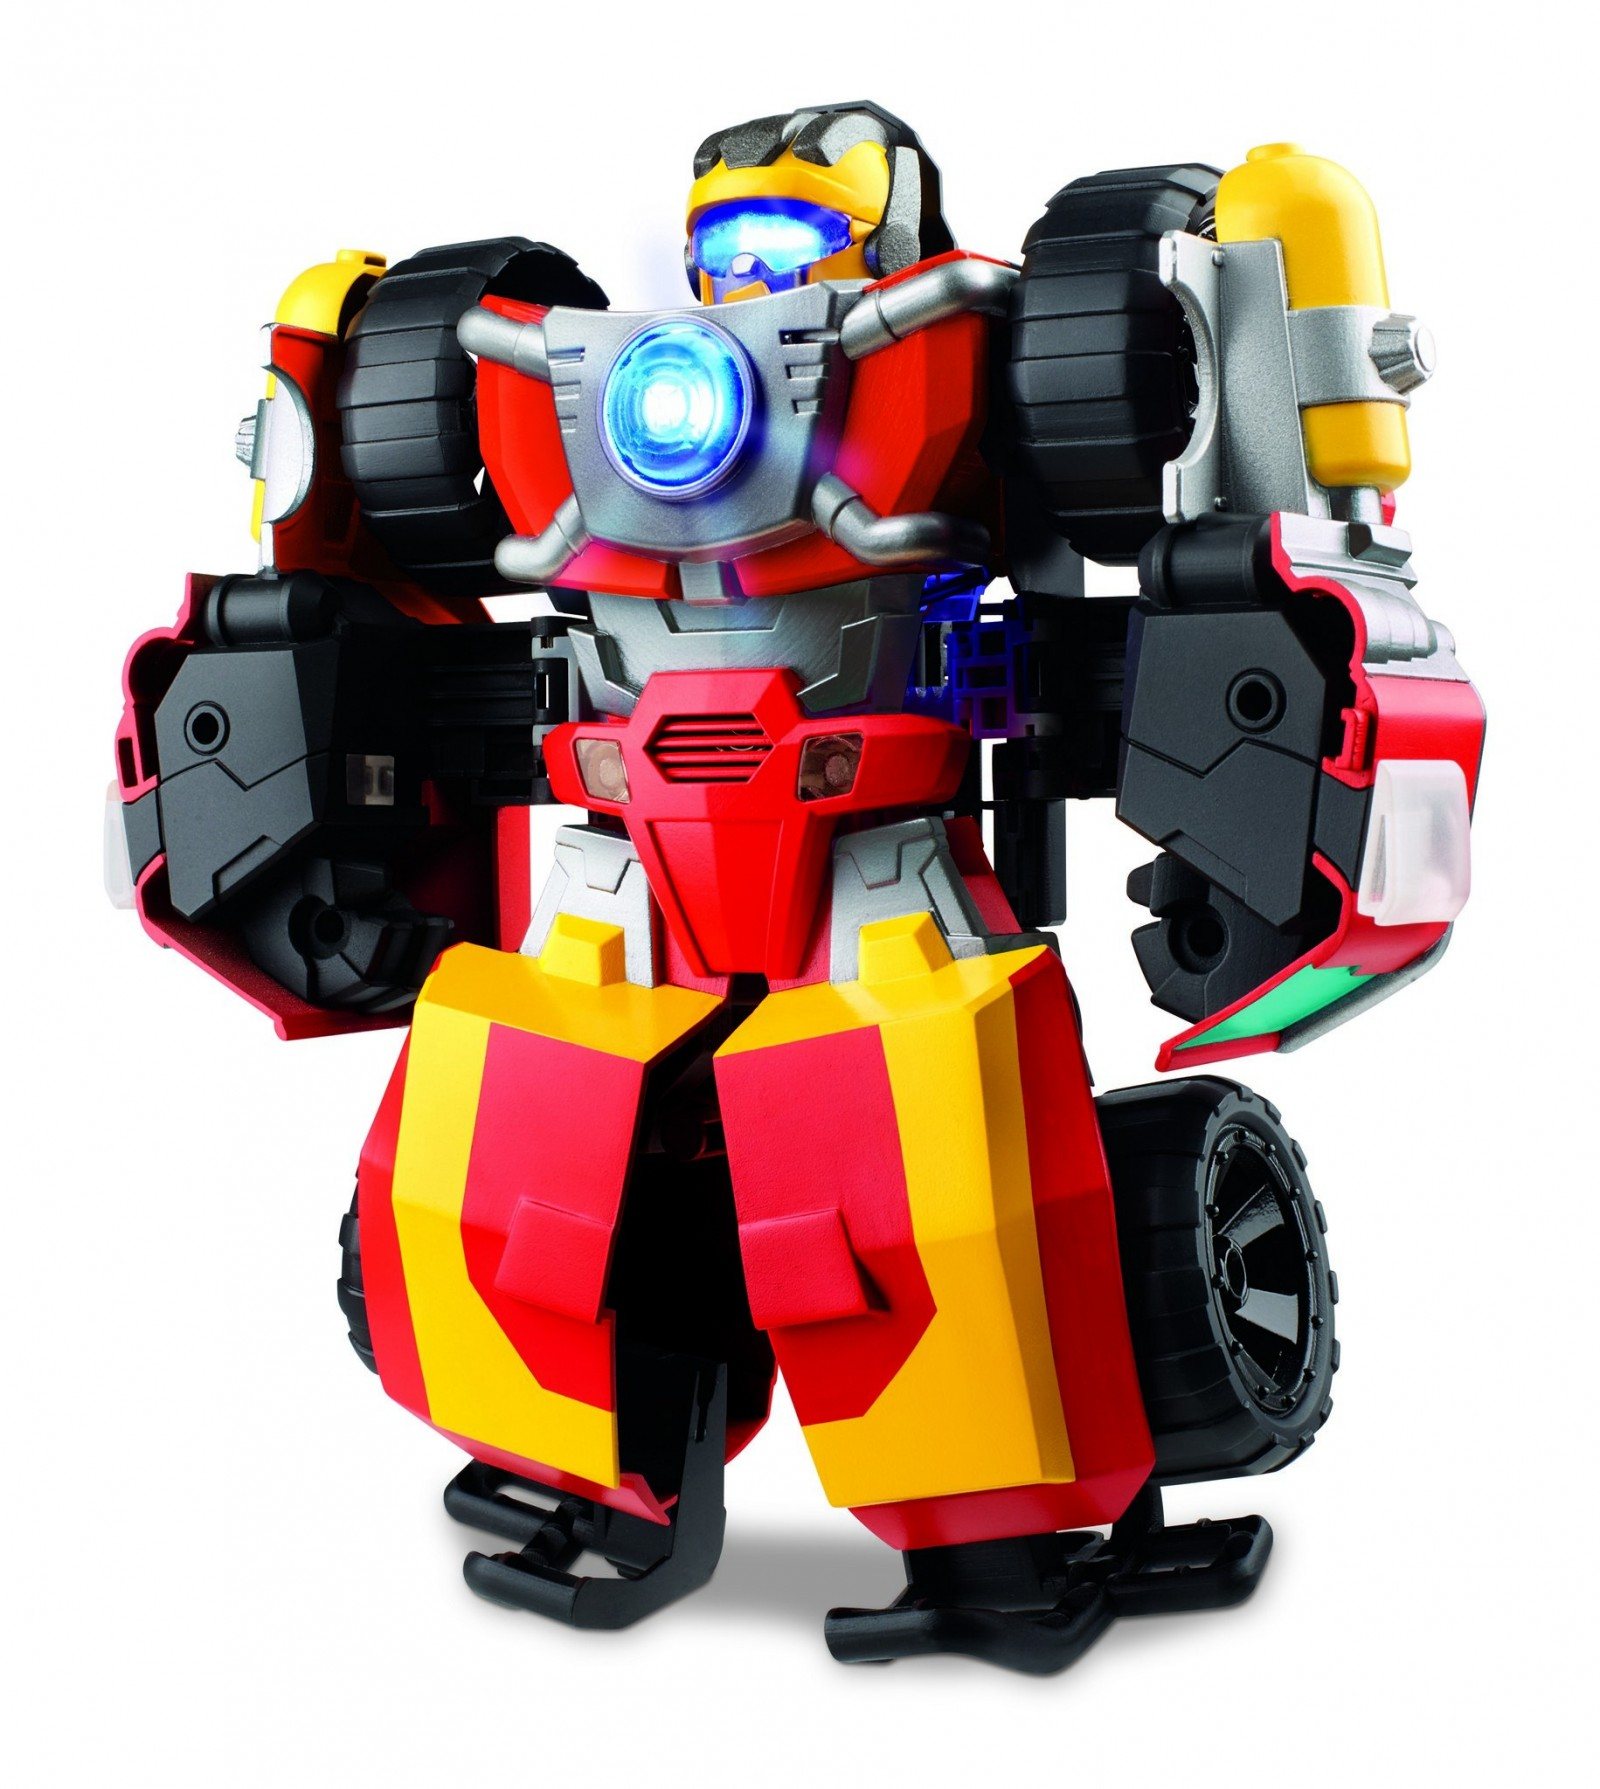 Transformers News: Official Images for Transformers: Rescue Bots Hot Shot, Guard Bumblebee, Knight Watch Optimus, More